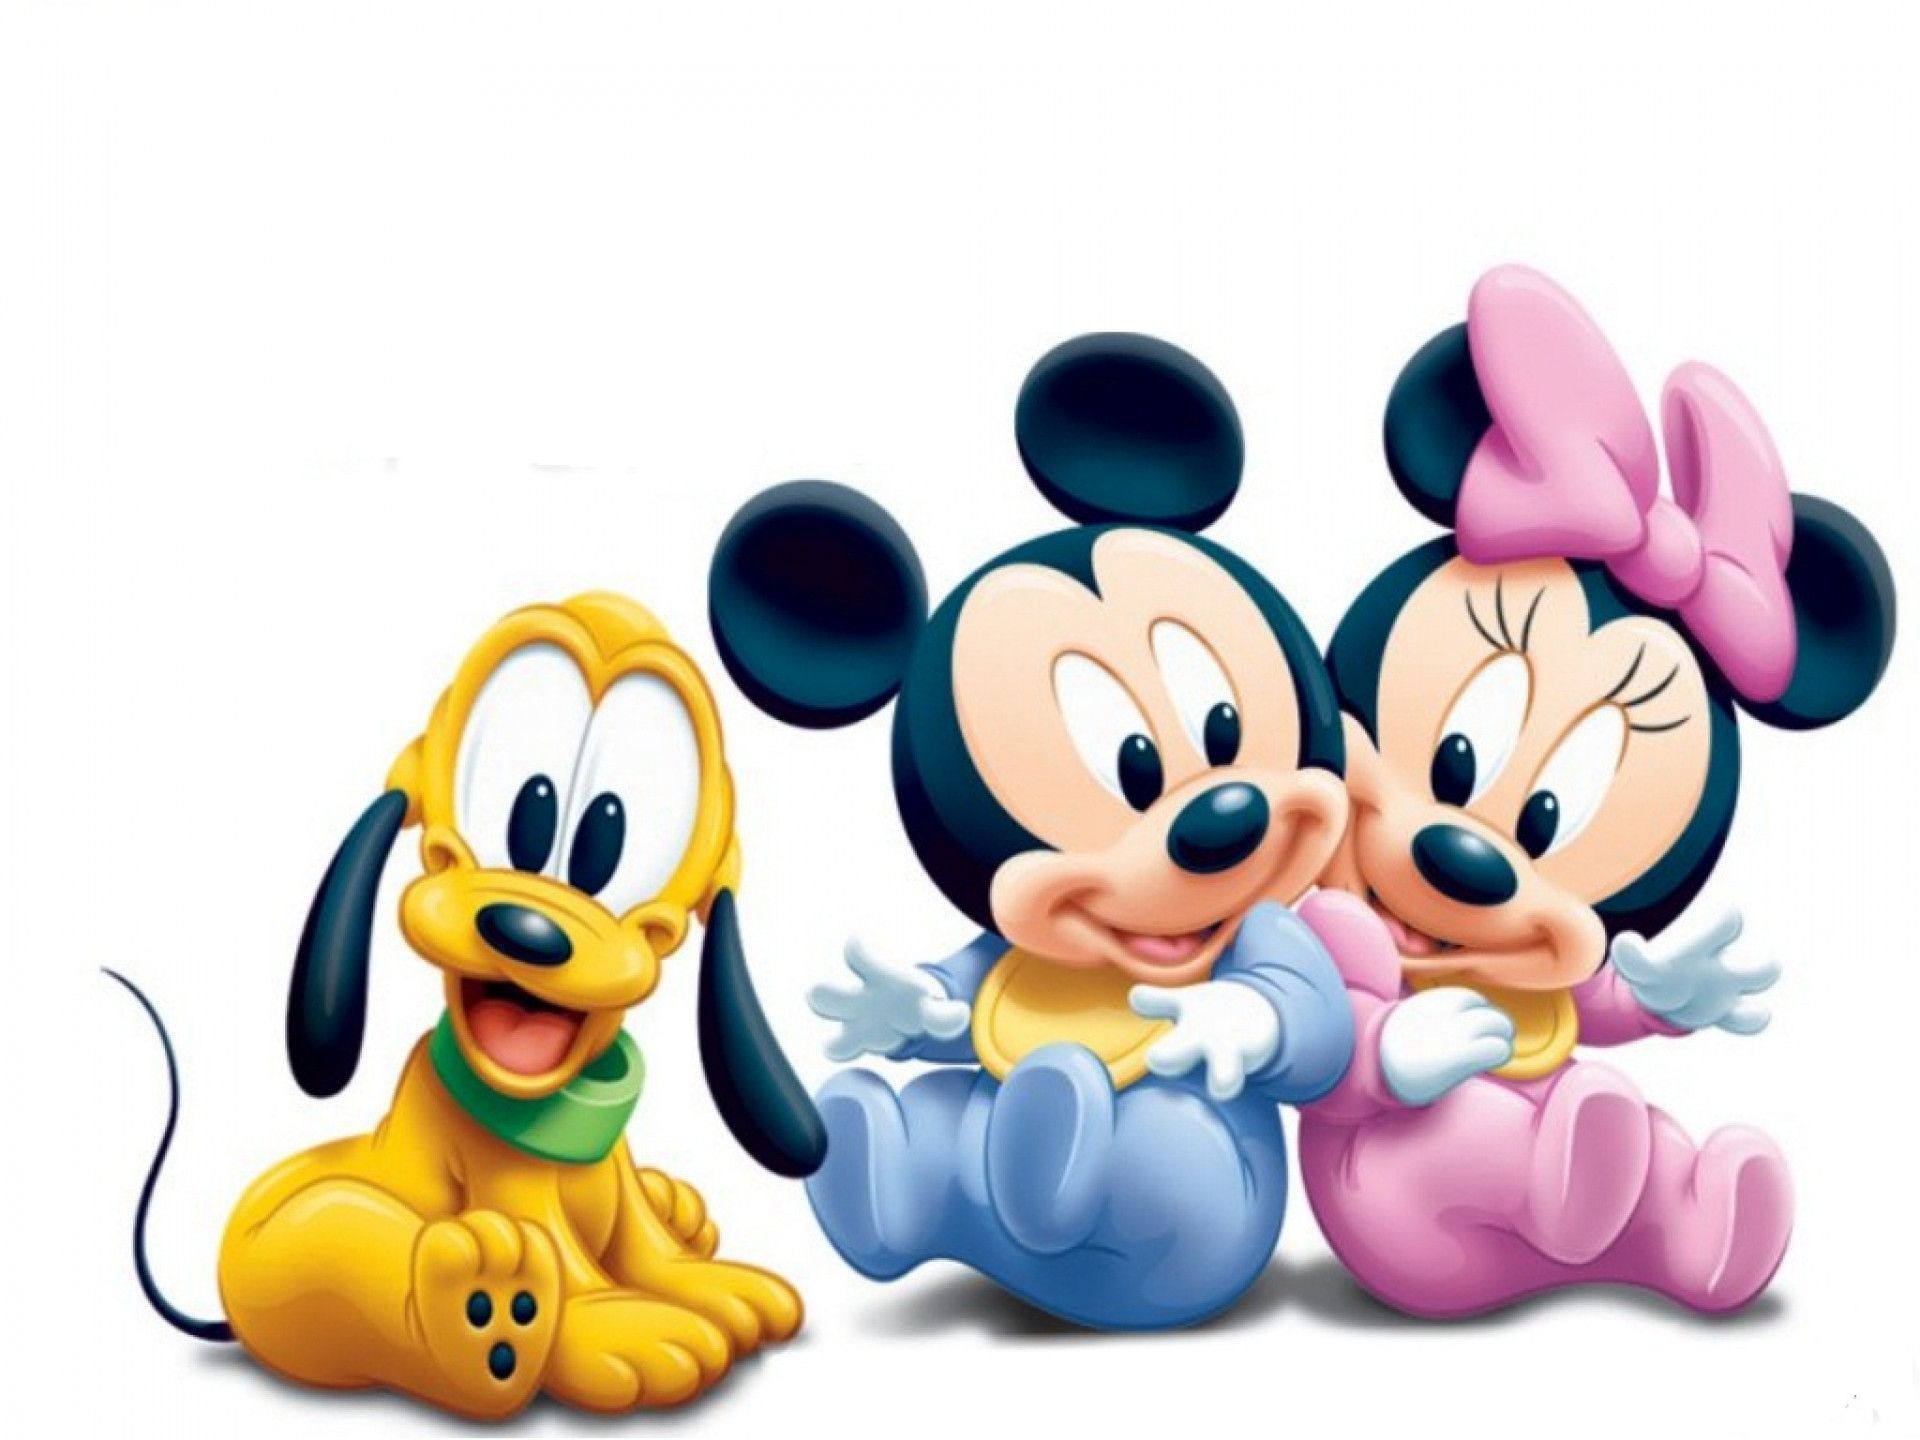 Mickey mouse hd images get free top quality mickey mouse hd images